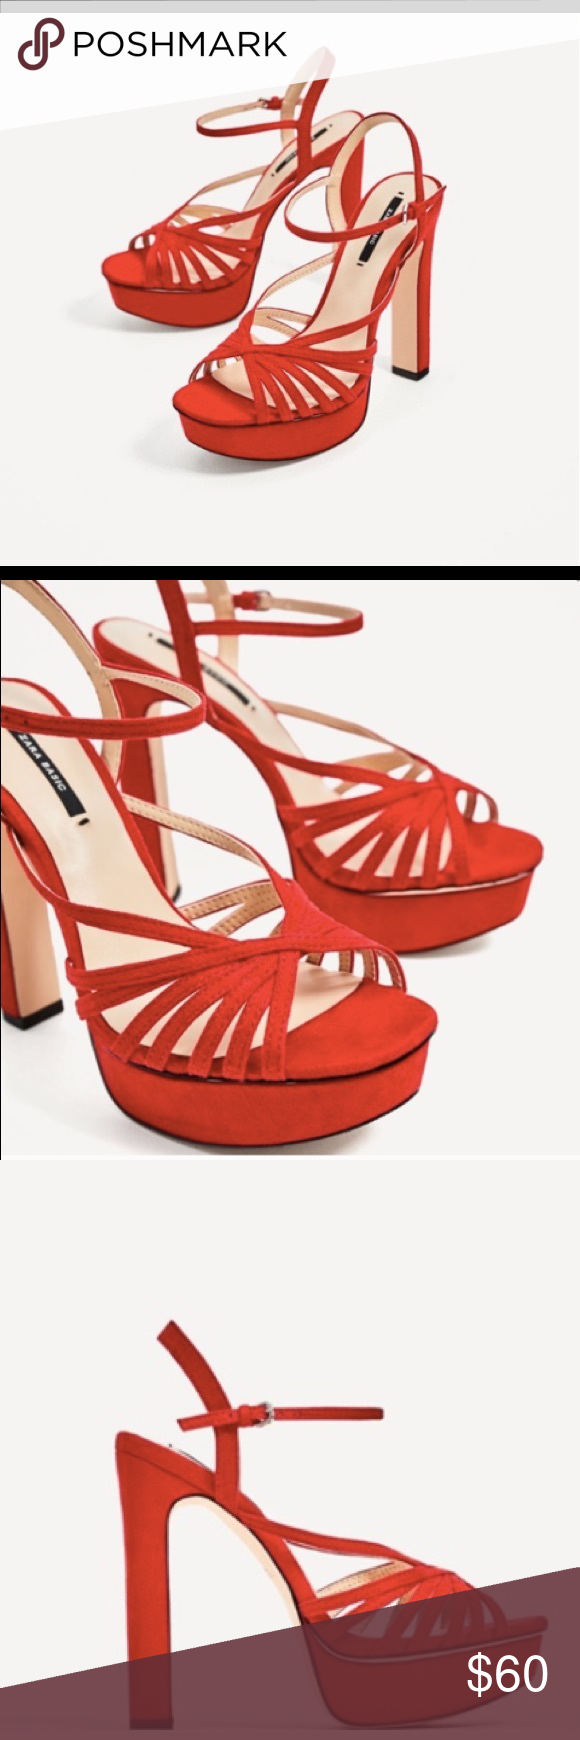 1b1e662692c Zara NWT red strappy platform heels size 41  10 Super cute brand new with  tags